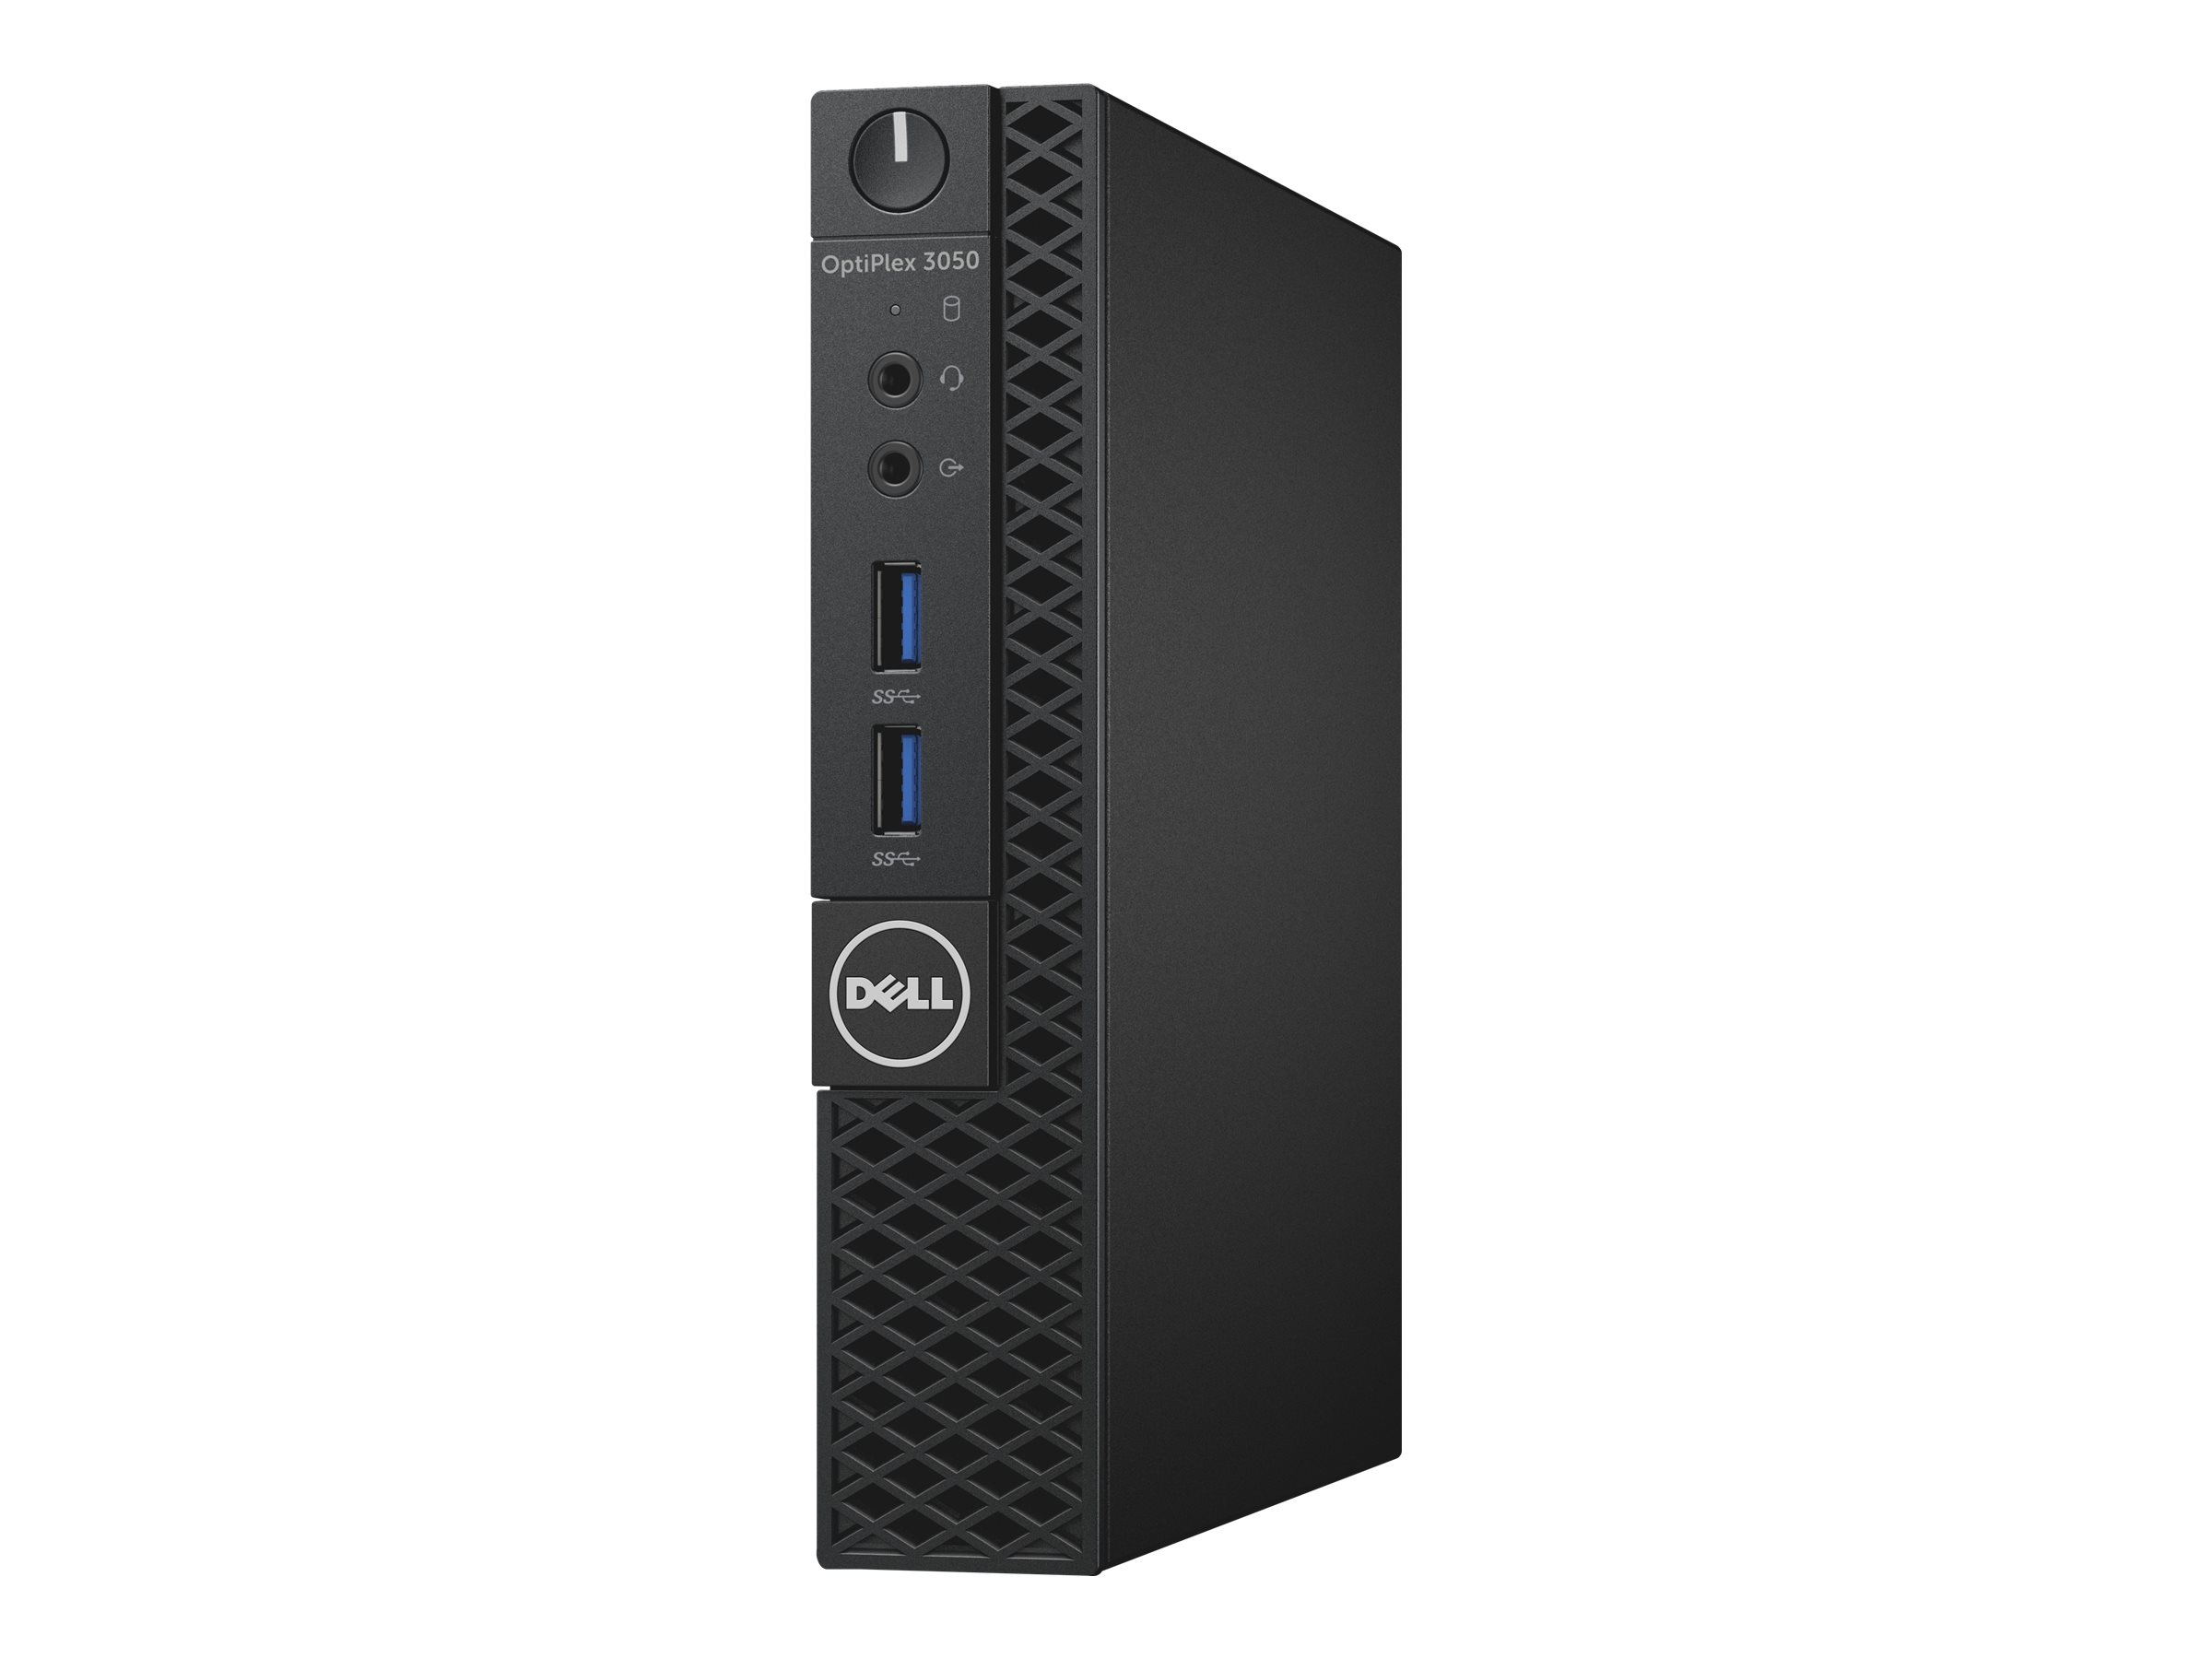 Dell OptiPlex 3050 - Micro - 1 x Core i5 7500T / 2.7 GHz - RAM 8 GB - SSD 256 GB - HD Graphics 630